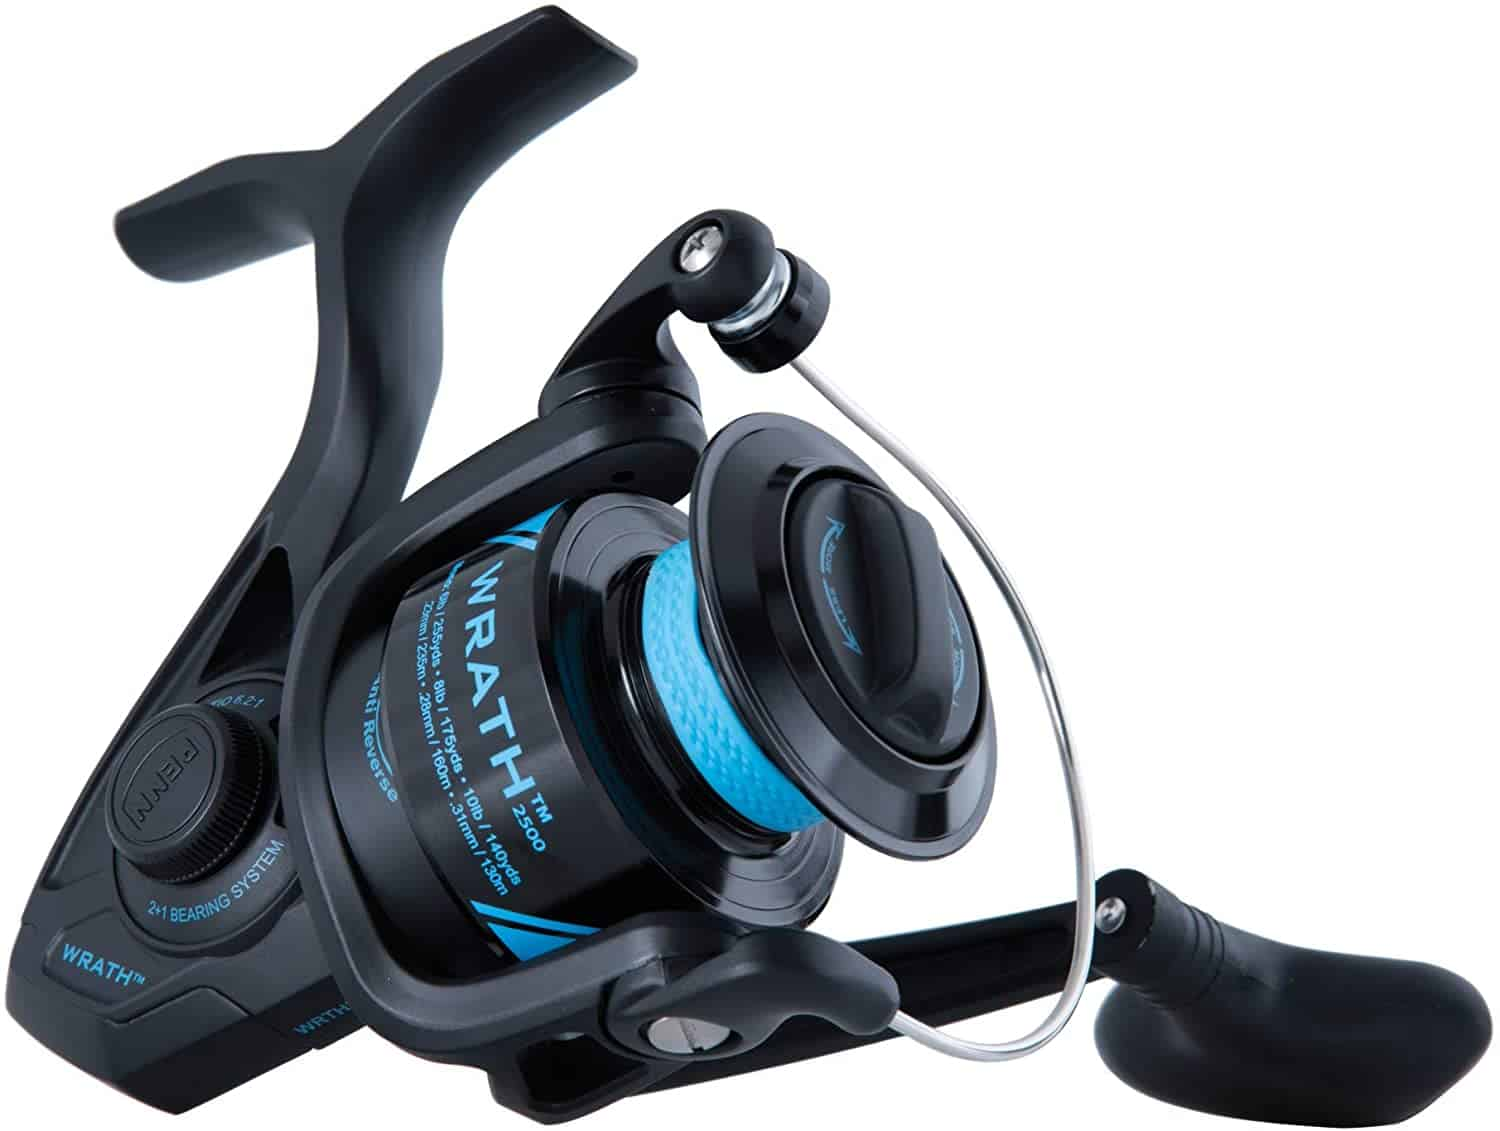 Wrath Spinning Reel by Penn